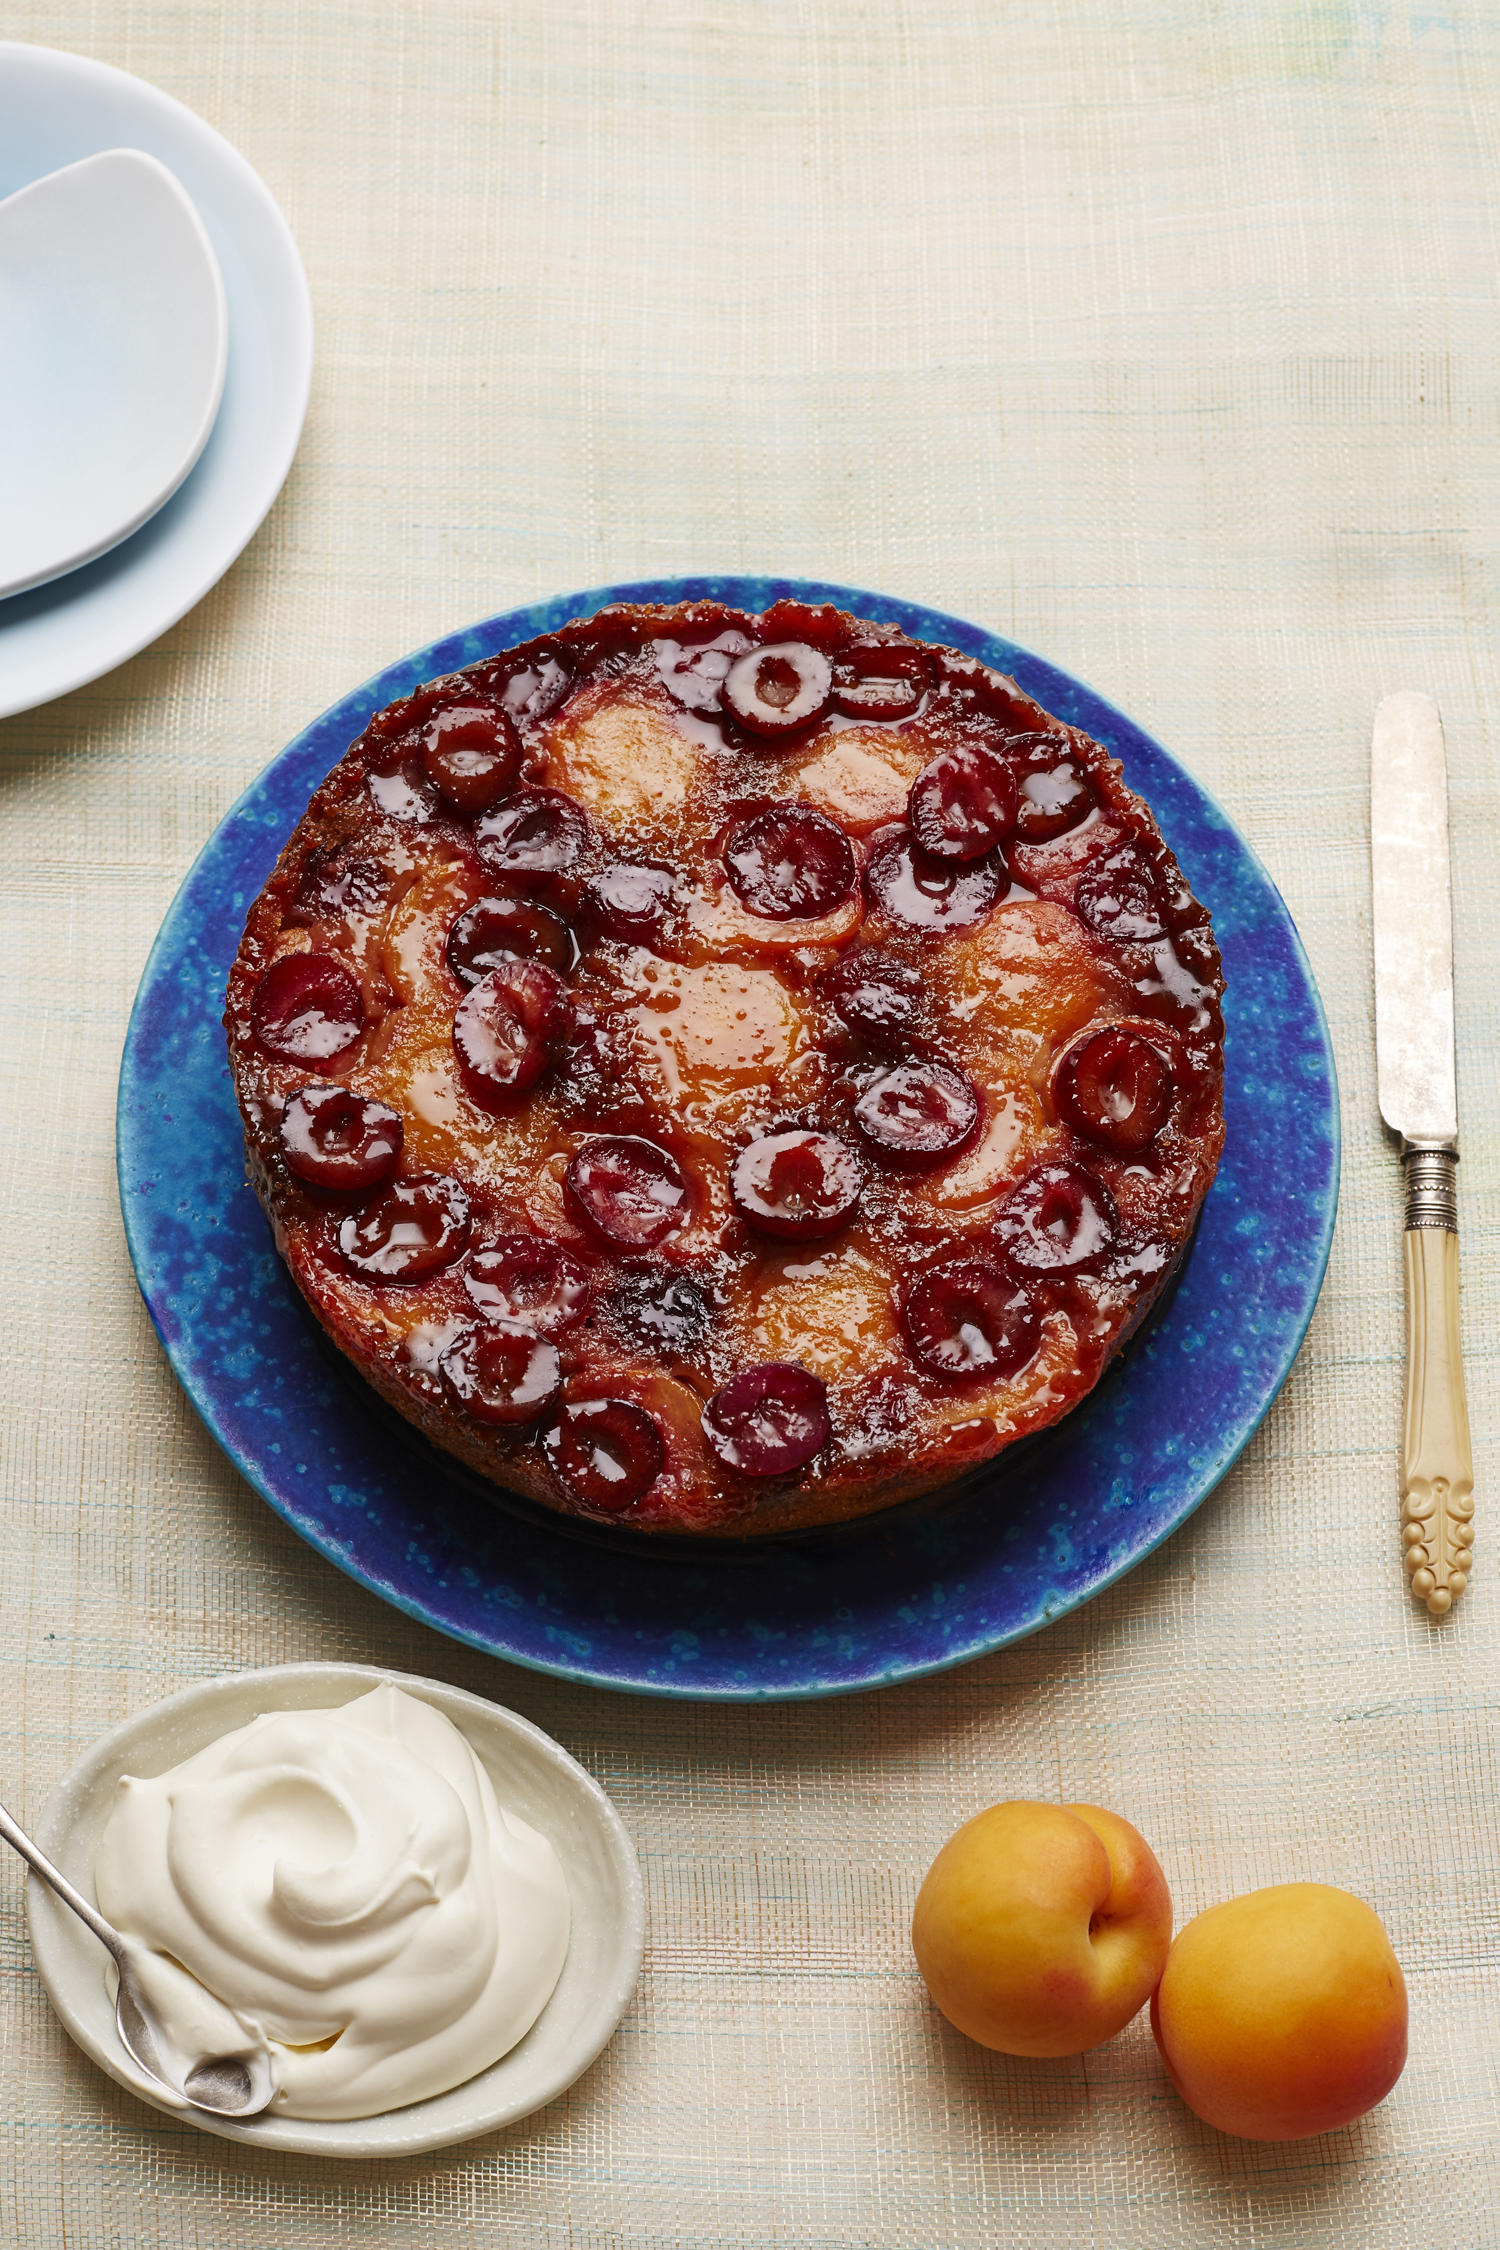 THE SUNDAY TIMES MAGAZINE Candice Brown's Upside Down Apricot & Cherry Cake